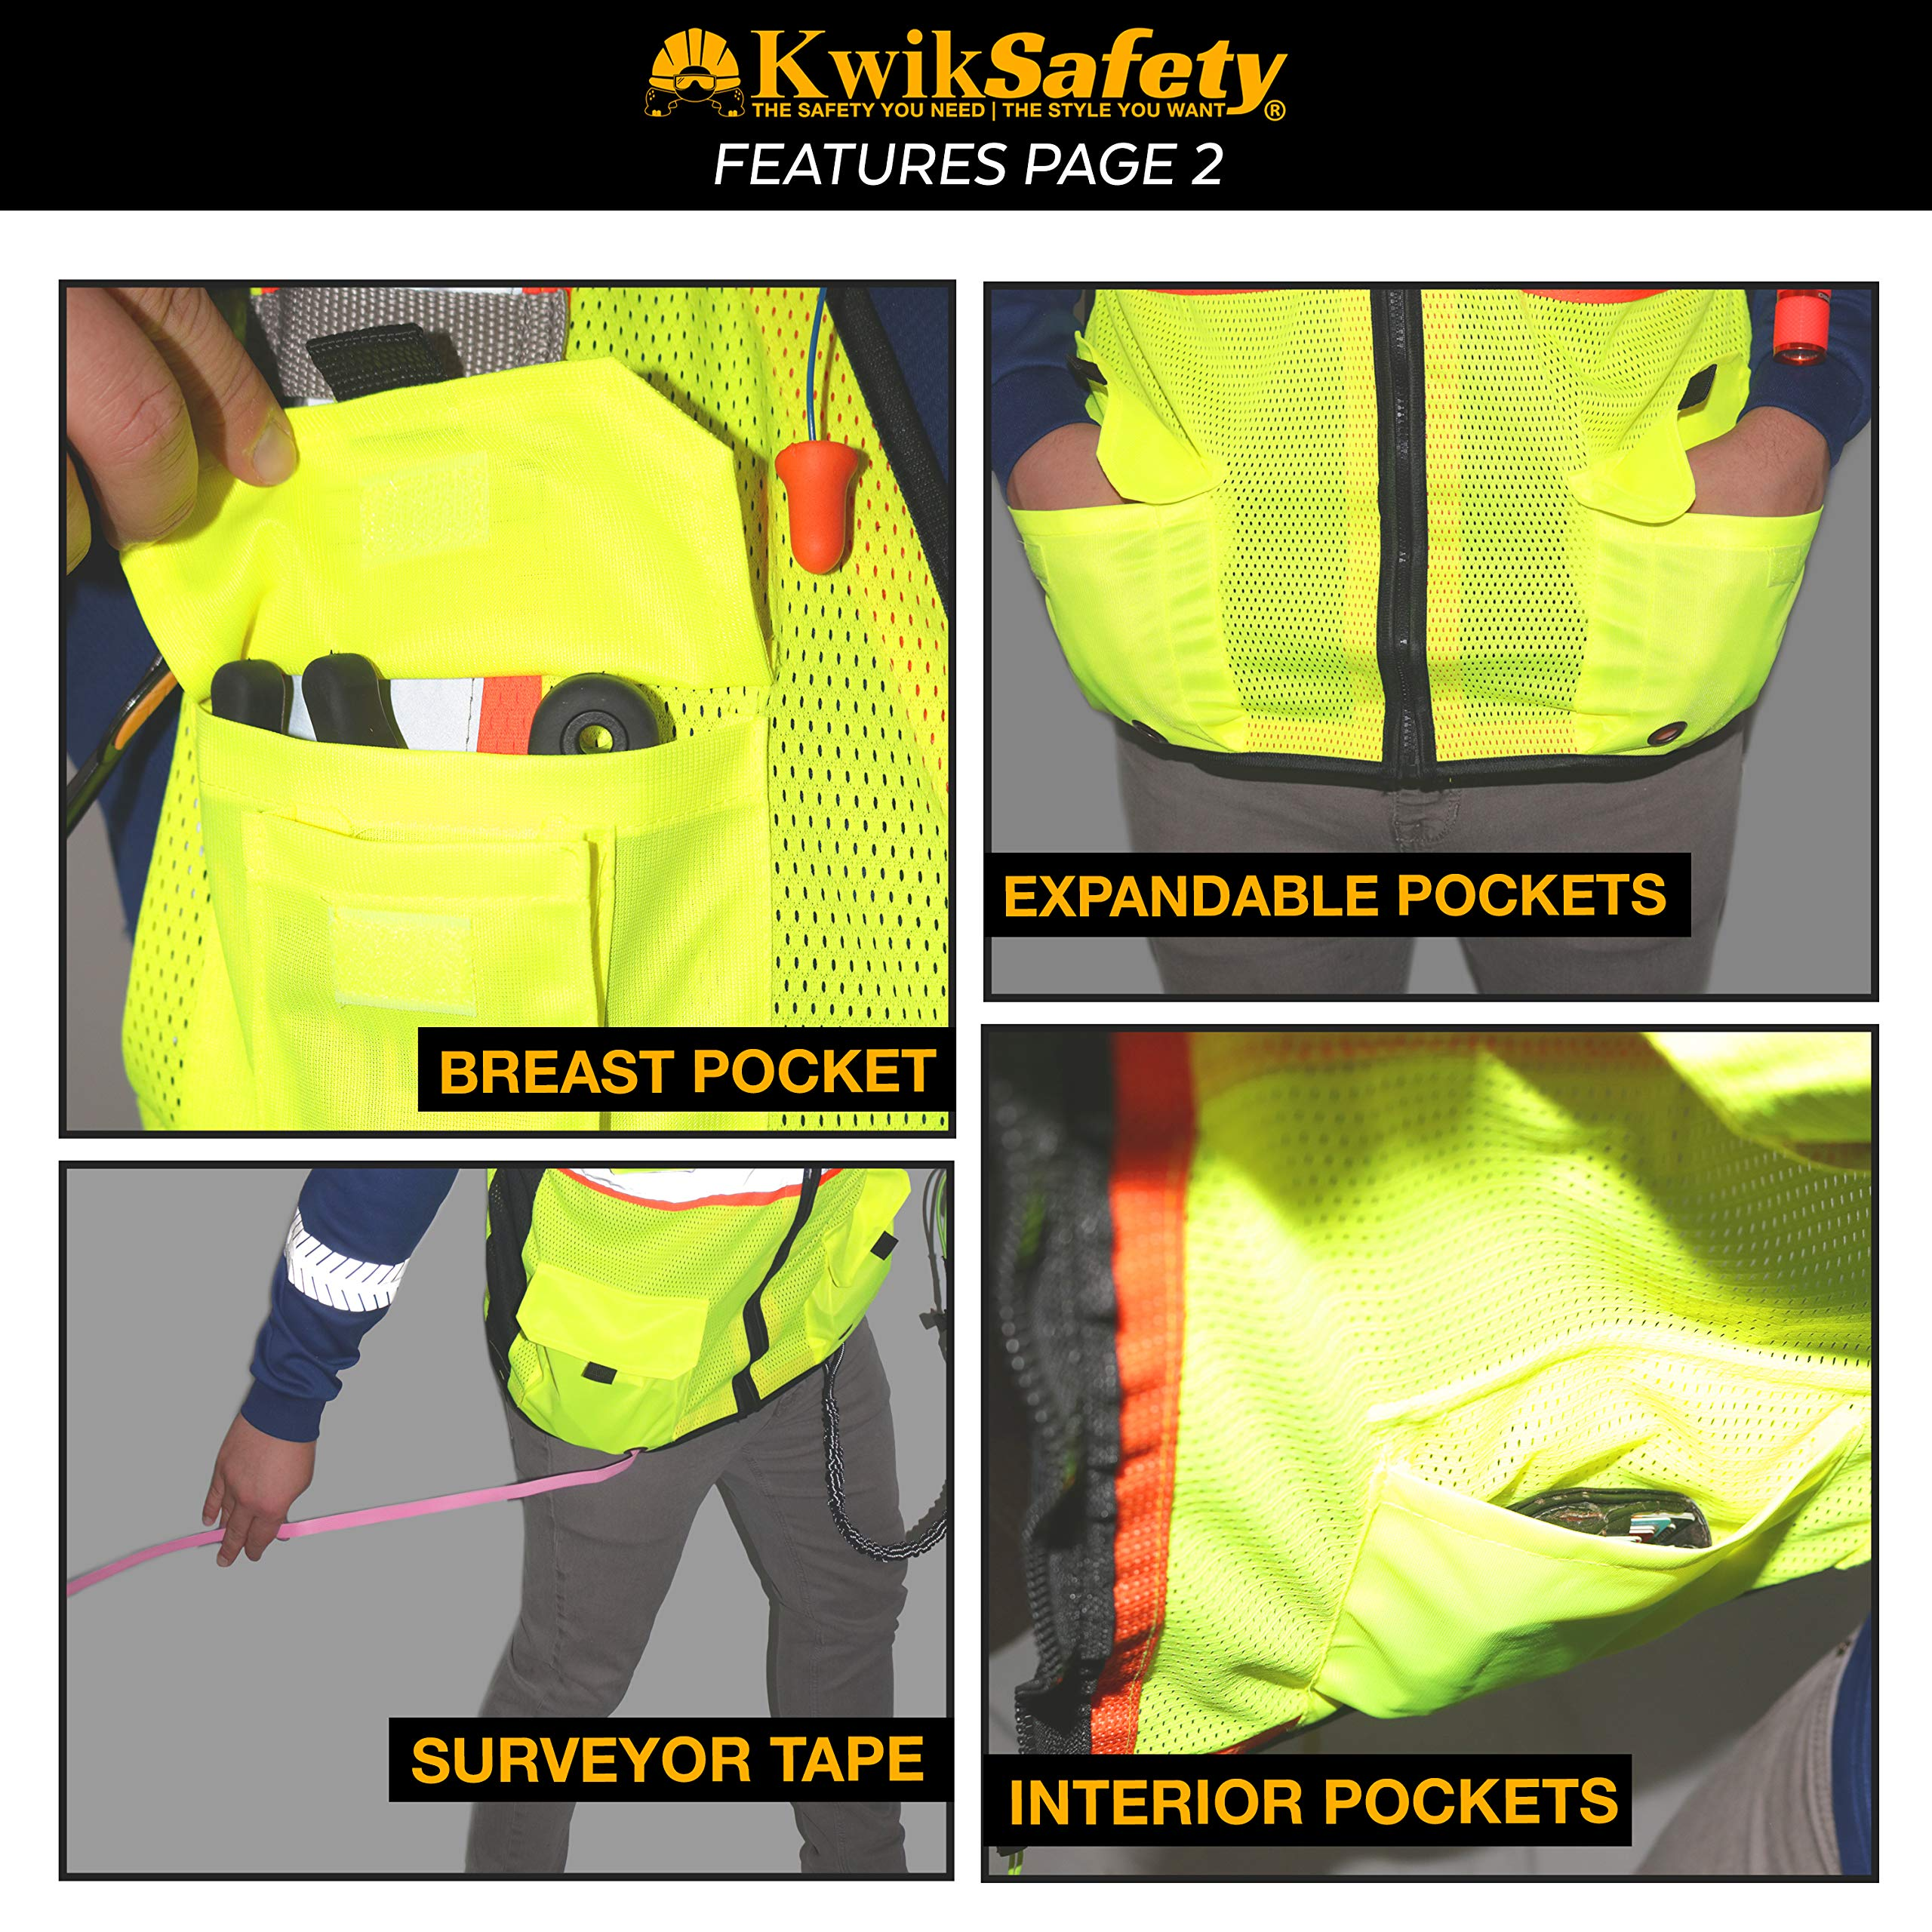 KwikSafety (Charlotte, NC) BIG KAHUNA (11 Pockets) Class 2 ANSI High Visibility Reflective Safety Vest Heavy Duty Mesh with Zipper and HiVis for OSHA Construction Work HiViz Men Yellow Black Small by KwikSafety (Image #5)